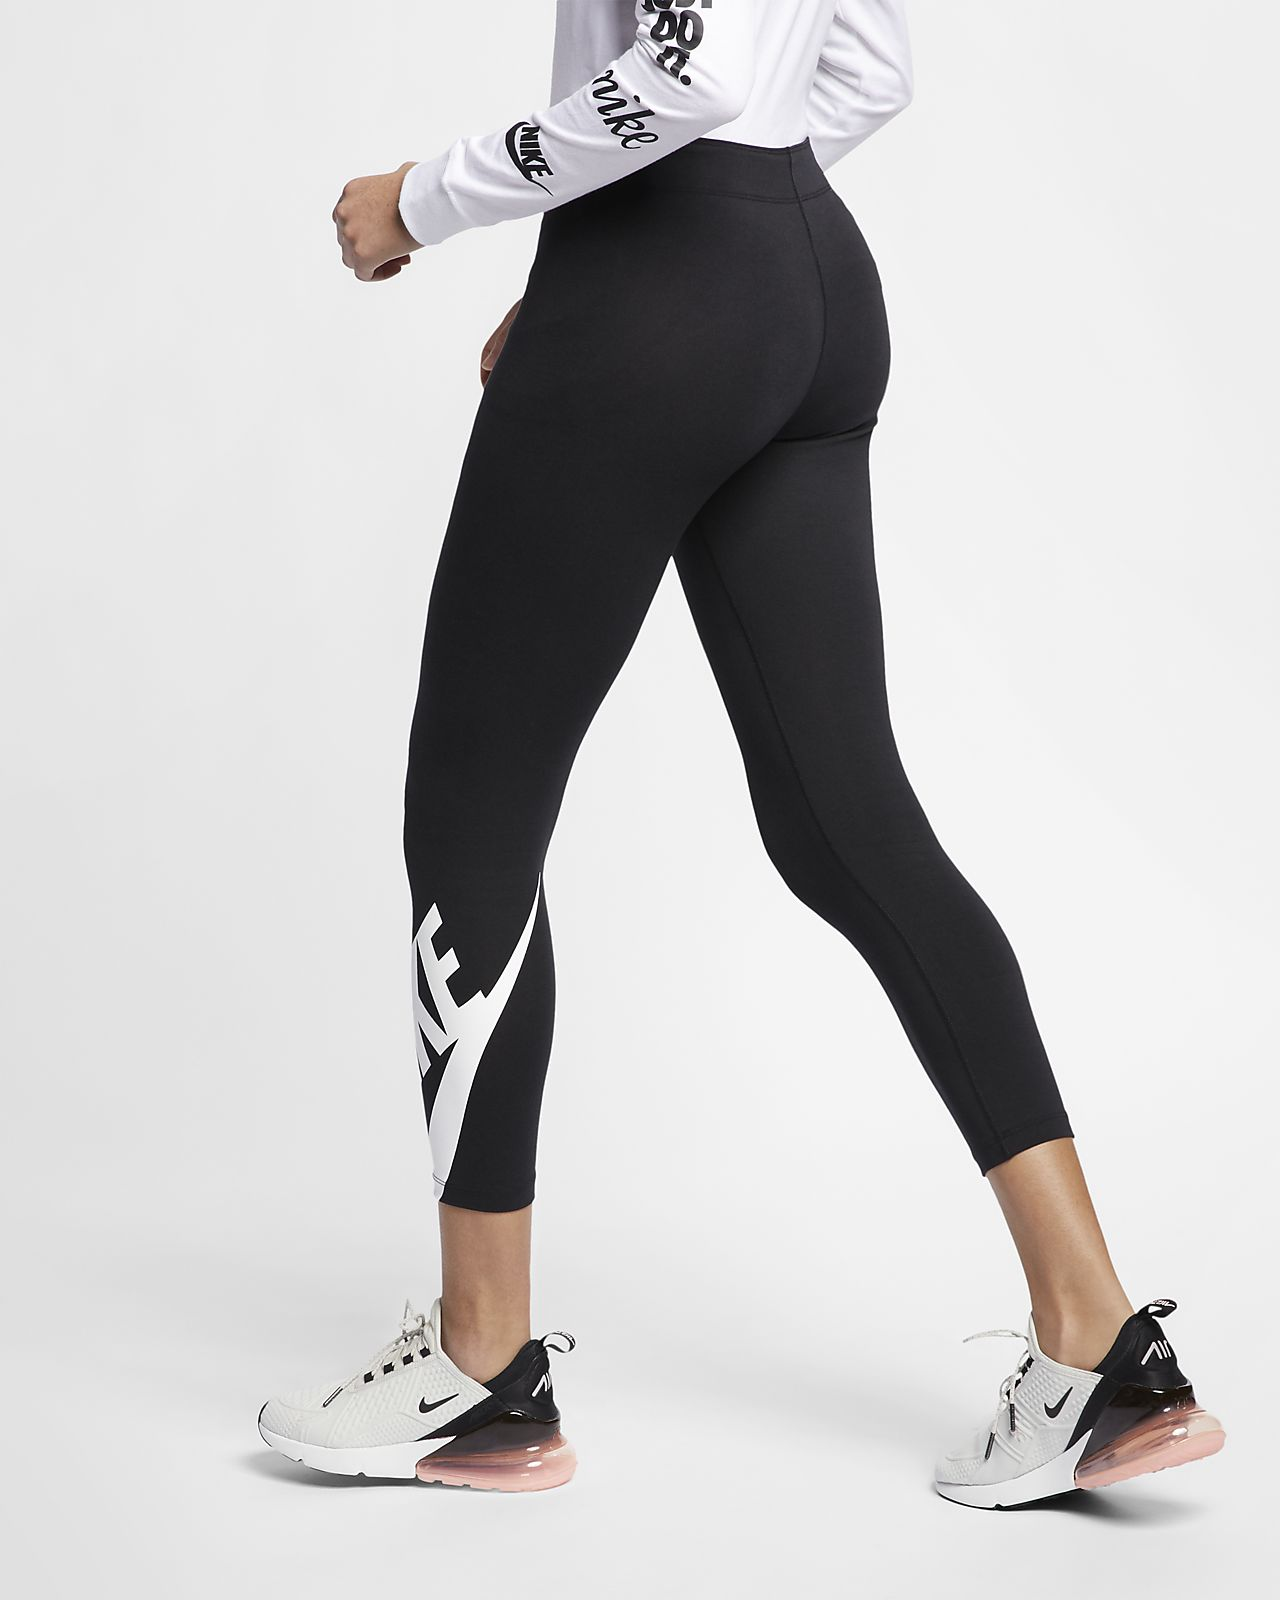 Nike Leggings Sportswear Leg-A-See Black Women